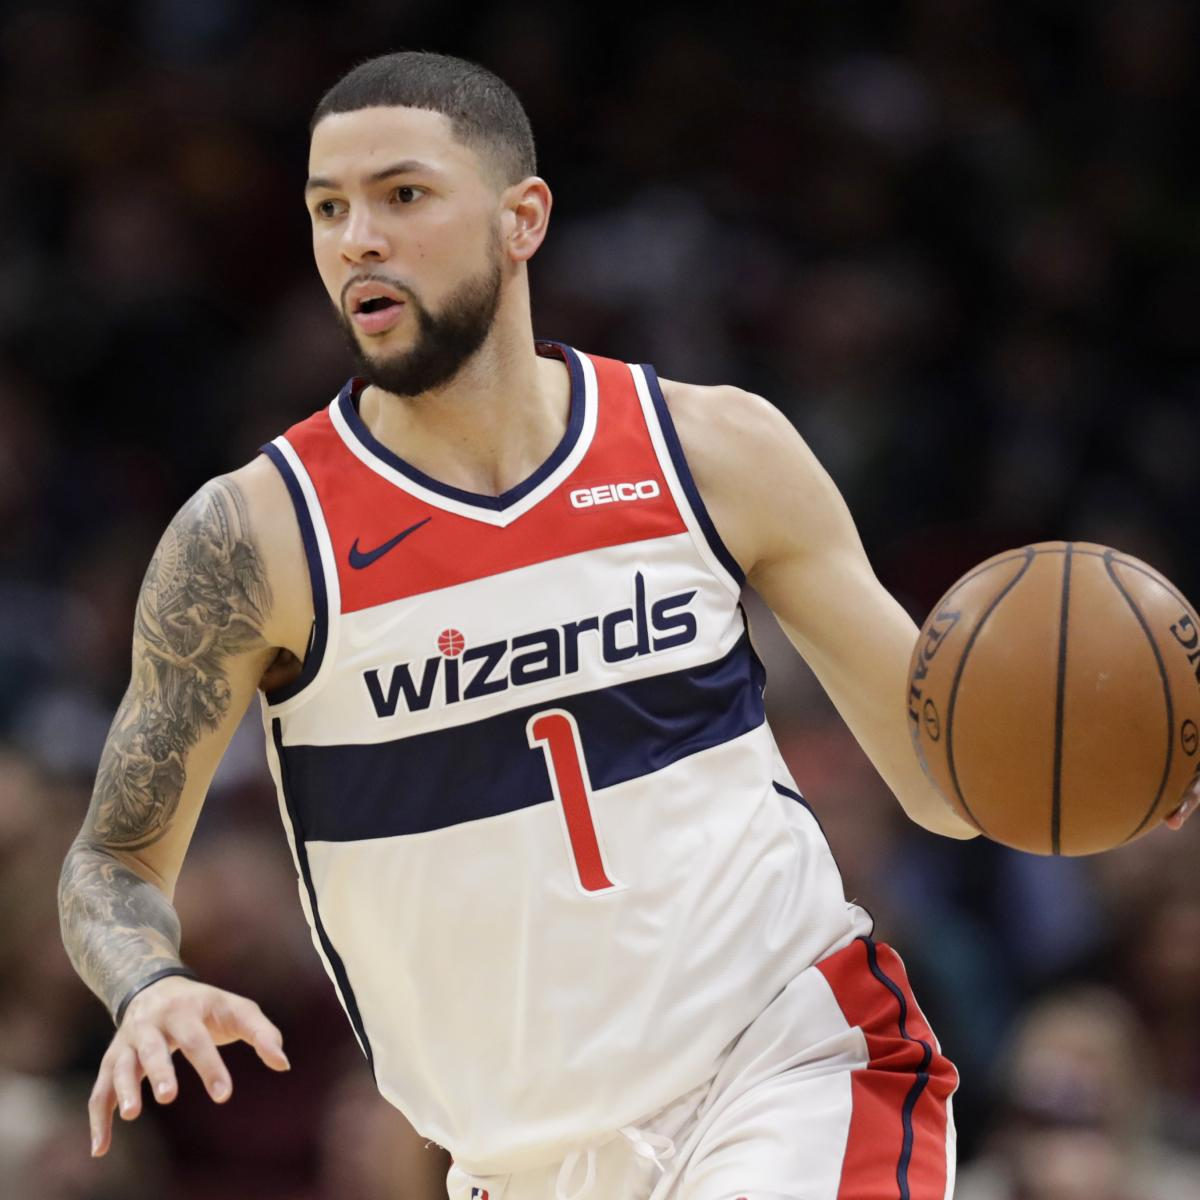 Rockets All Time Roster: NBA Rumors: Austin Rivers, Rockets Agree To Contract After